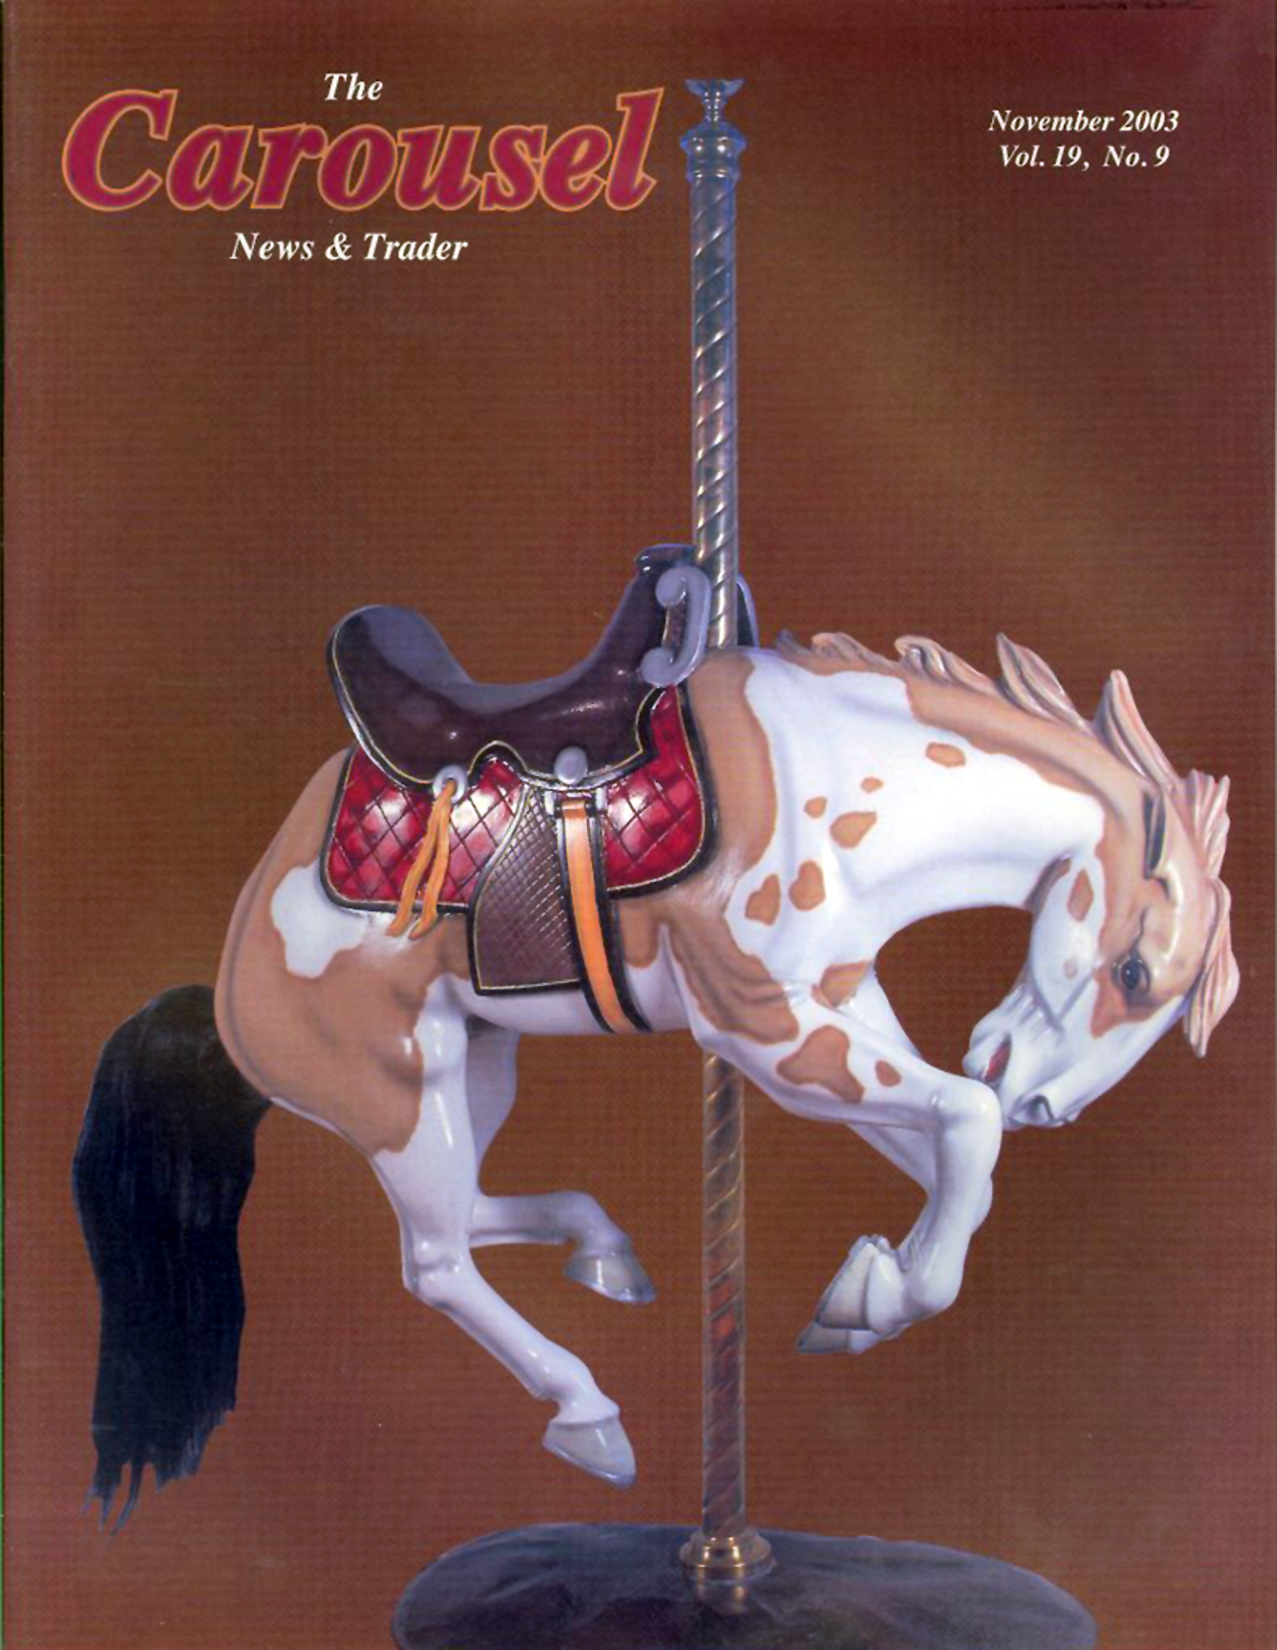 Issue No. 9, Vol. 19 – November 2003